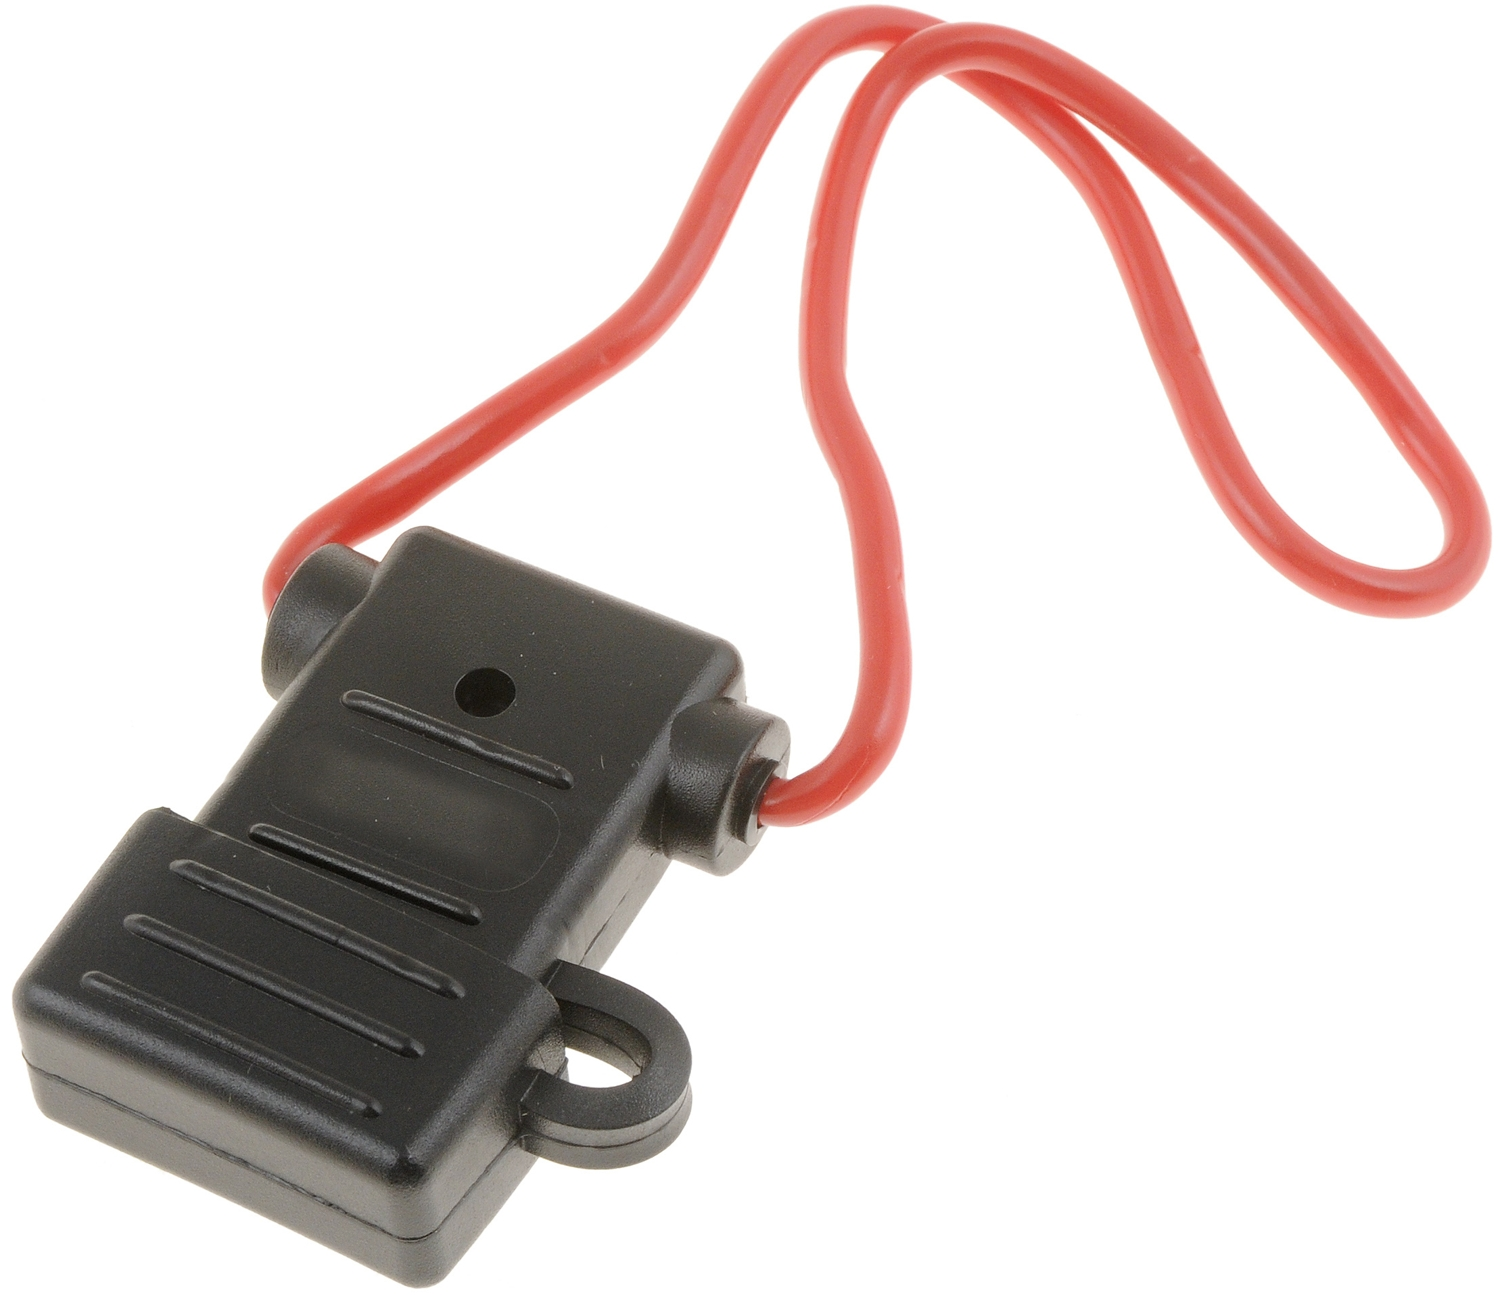 84939 Dorman (OE Solutions) Fuse Holder 4.5 Inch 14 Gauge Wire